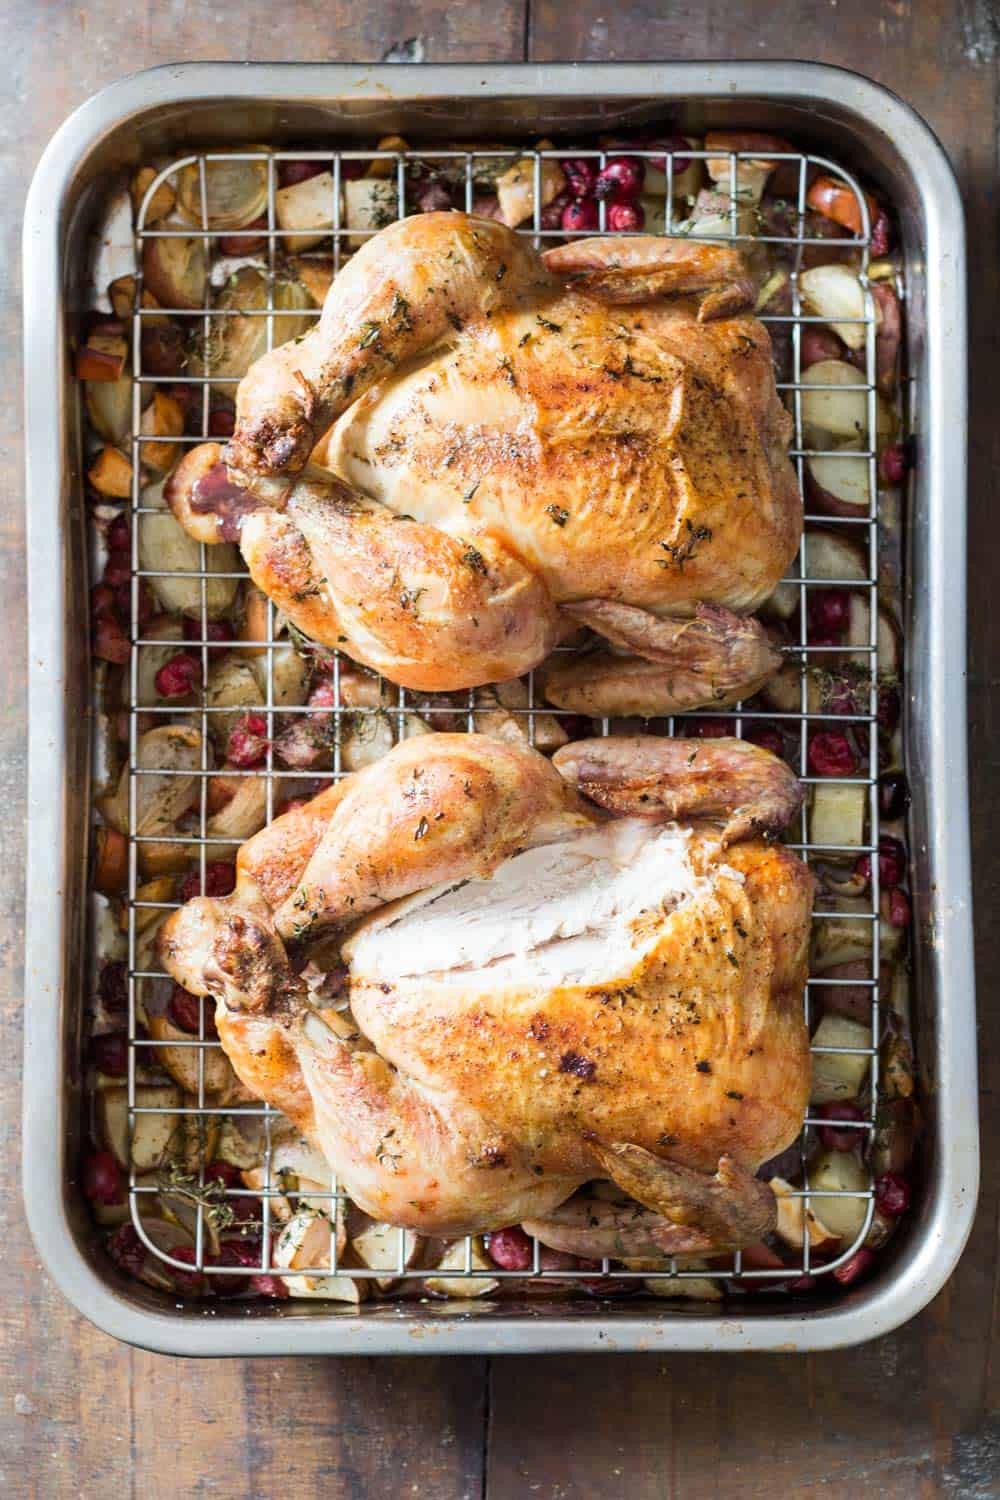 Two whole roasted chickens in grilling pan, with chopped apples, potatoes and cranberries at the bottom.